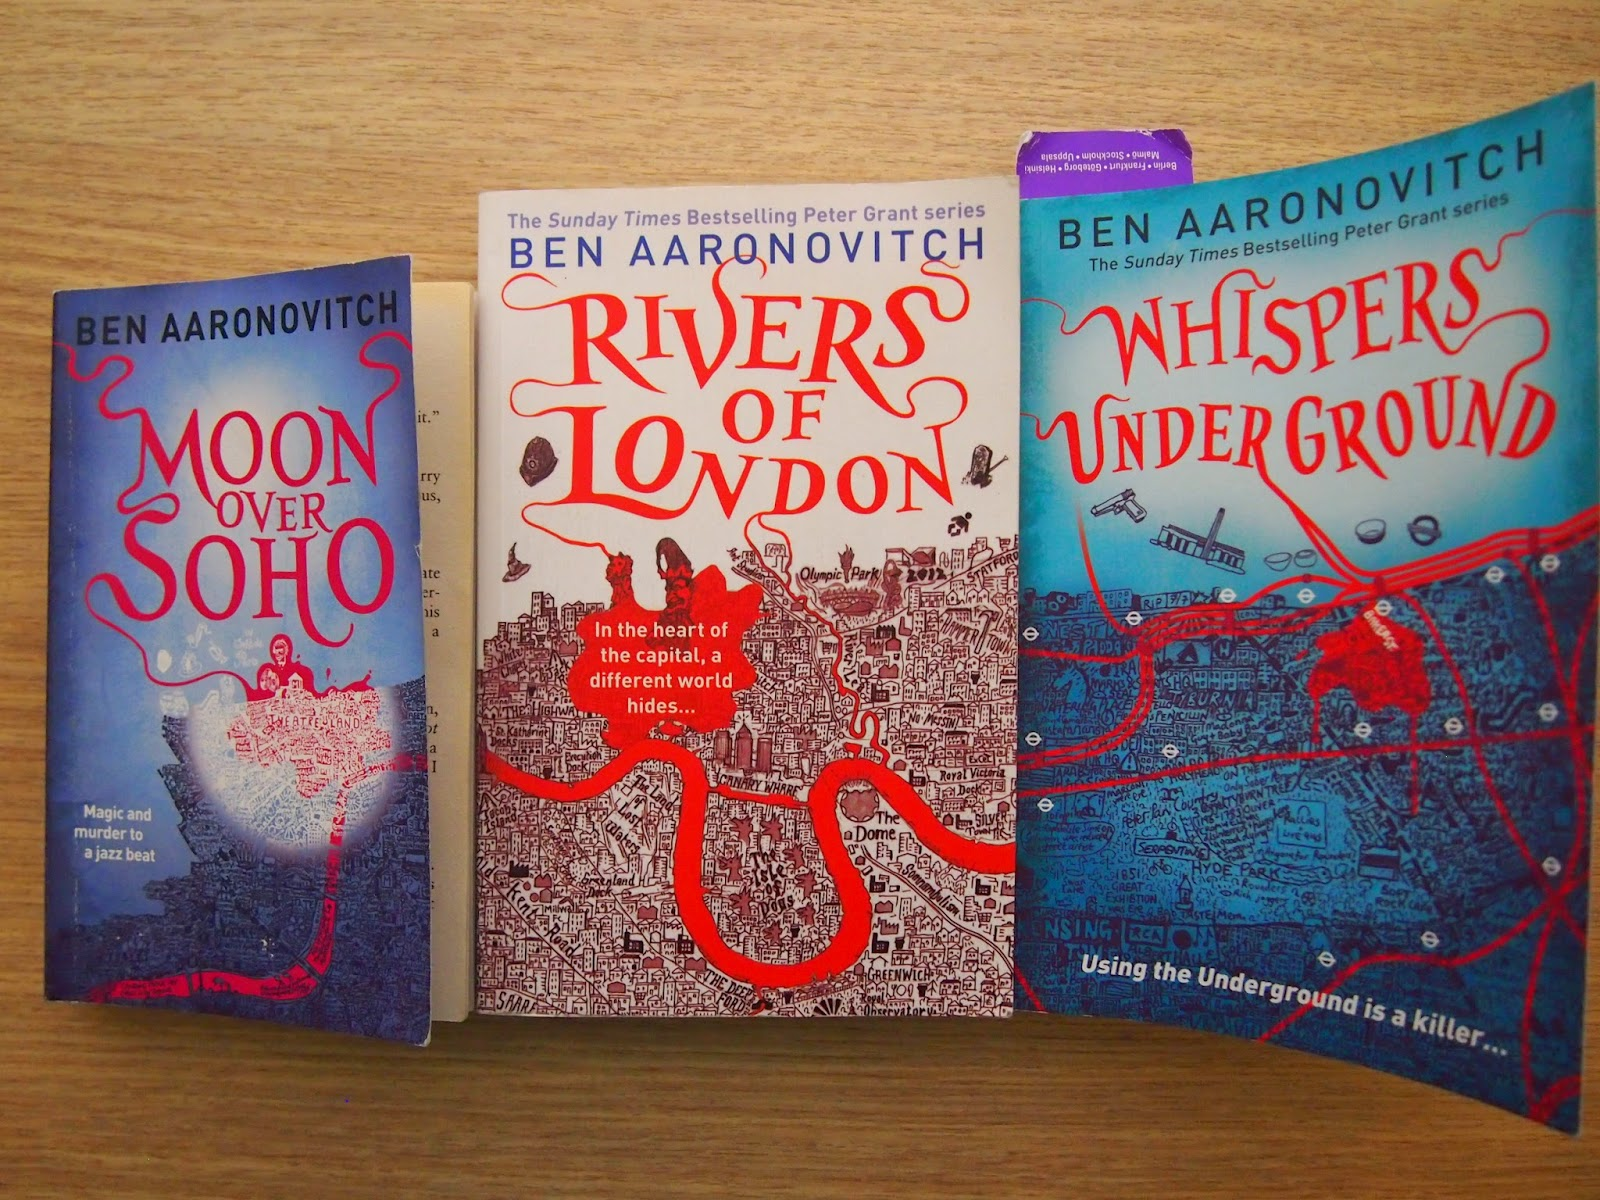 a photograph of three of the Peter Grant books by Ben Aaronovitch